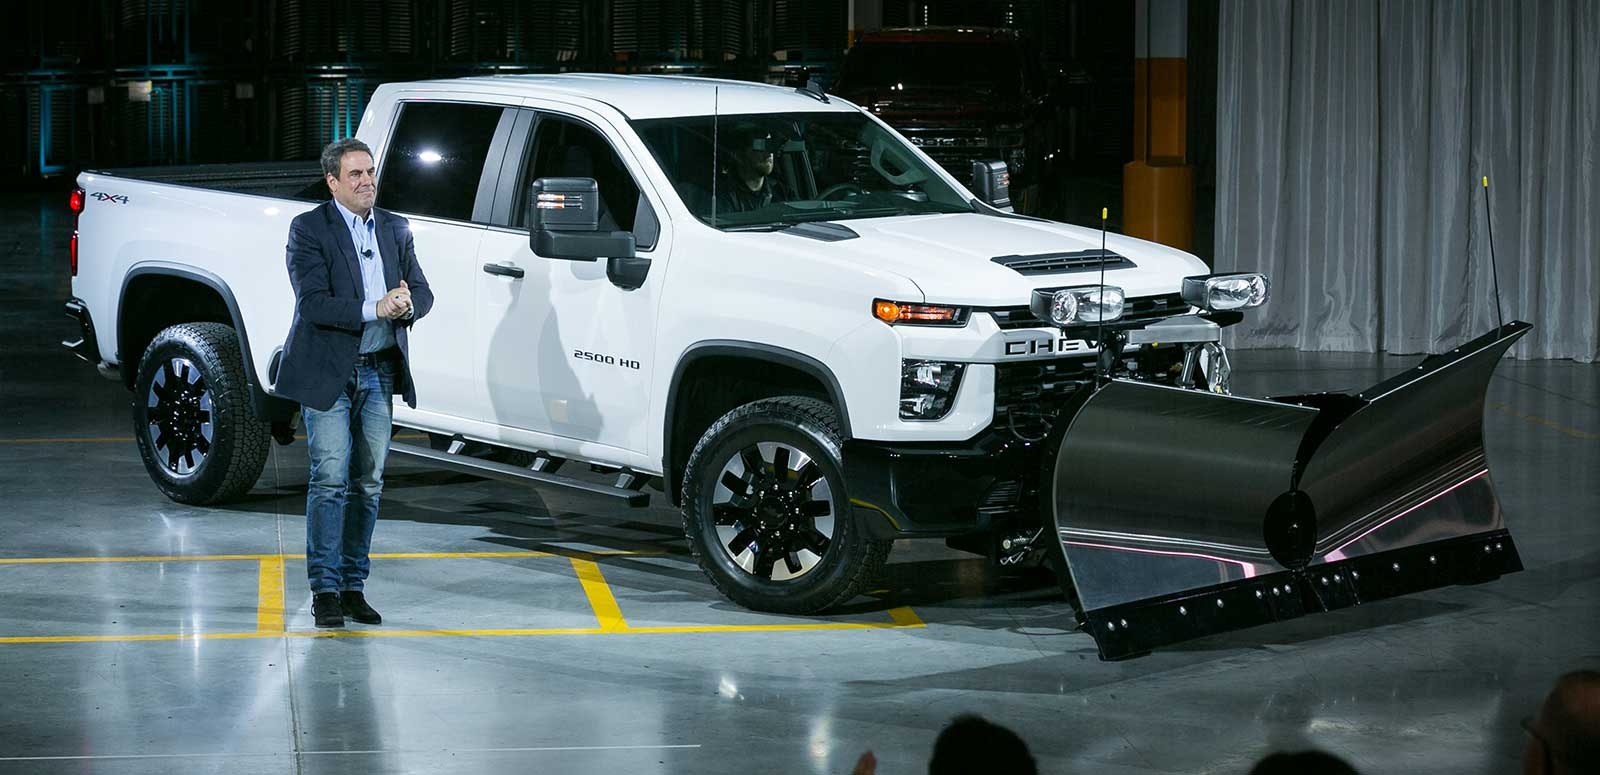 2020 Chevy Silverado Hd Brings Fight To Ford And Ram This Summer